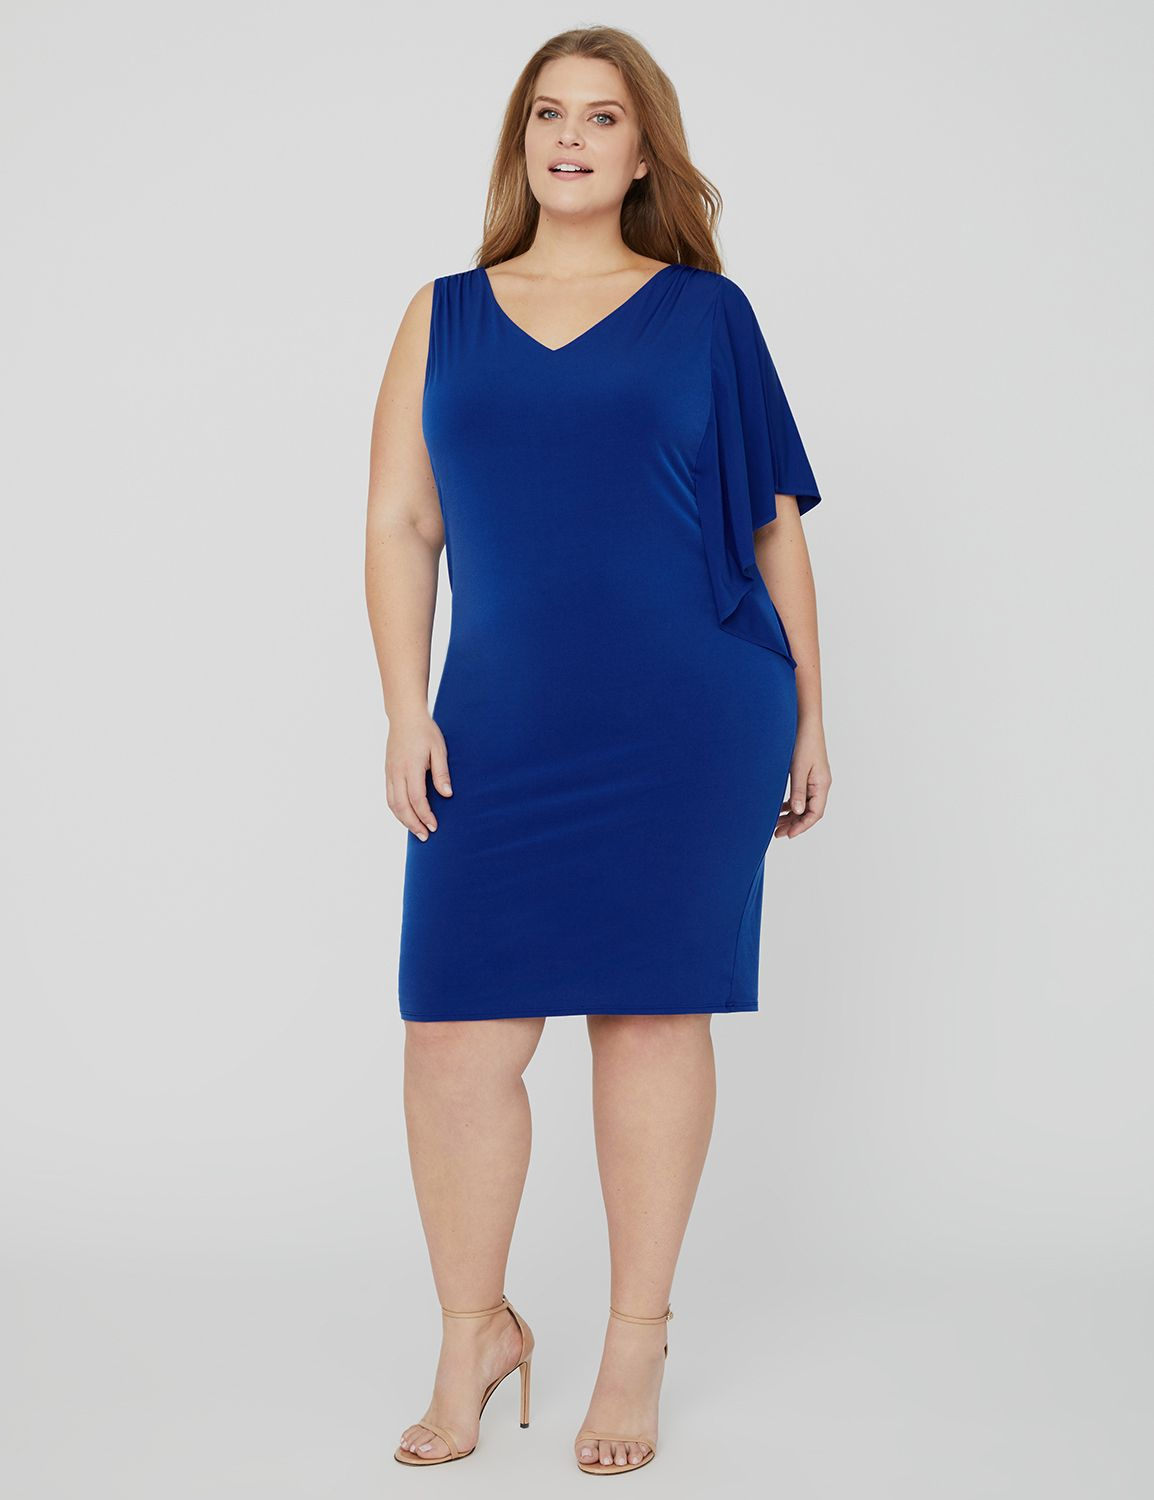 Curvy Collection One-Sleeve Dress 1090273 Curvy Collection ITY Dress MP-300098688